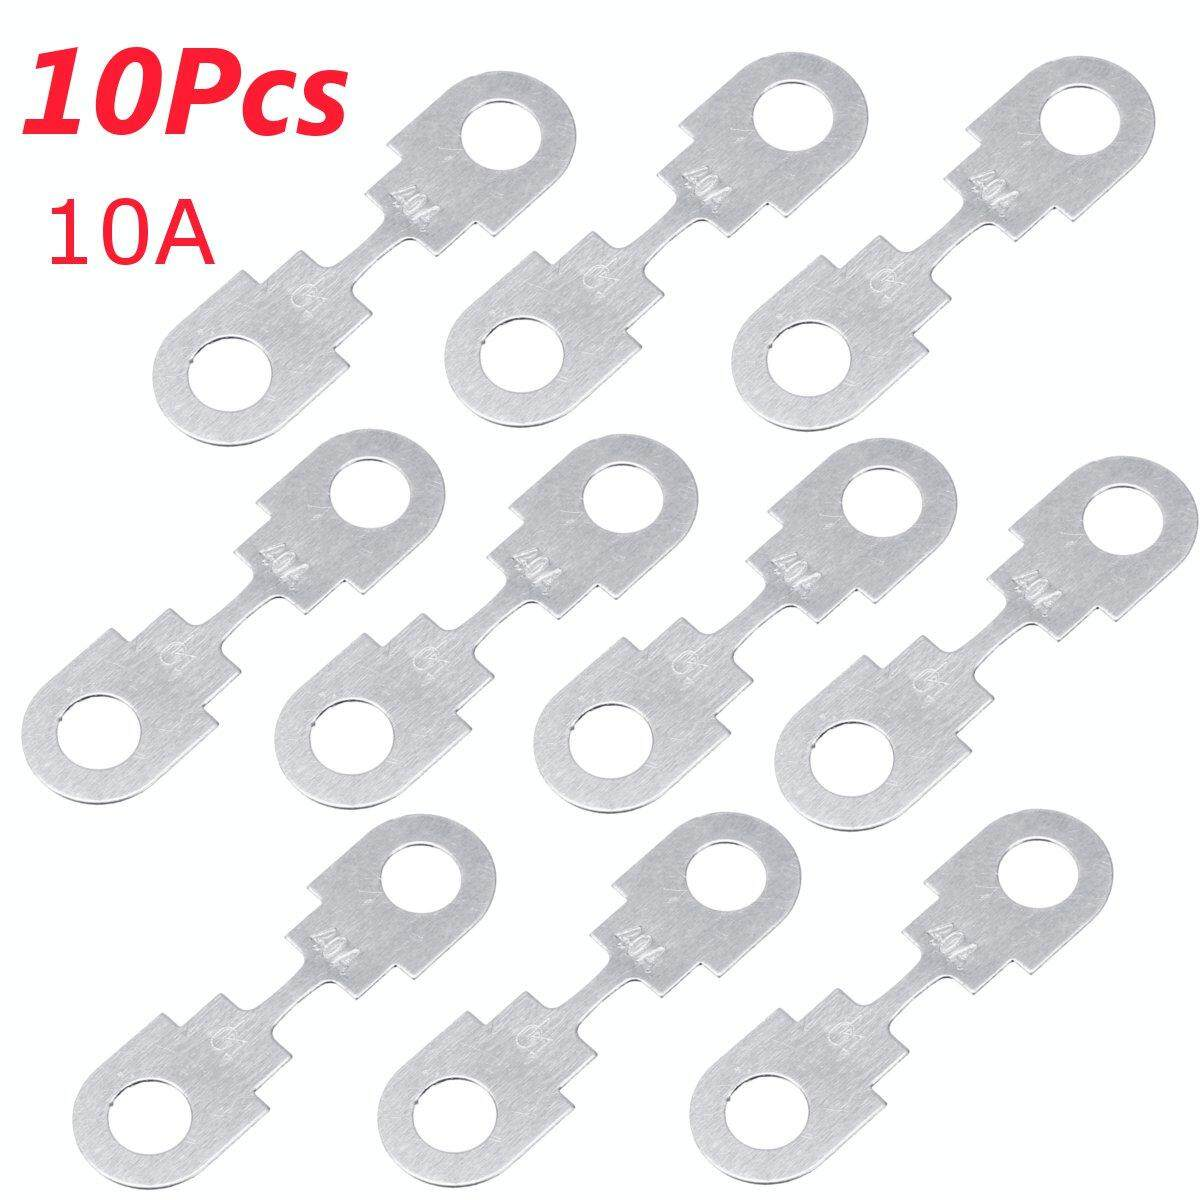 【free Shipping + Flash Deal】10pcs 12v 40a Silver Metal Fuse Strips Flat For Vw Audi Seat Ford By Freebang